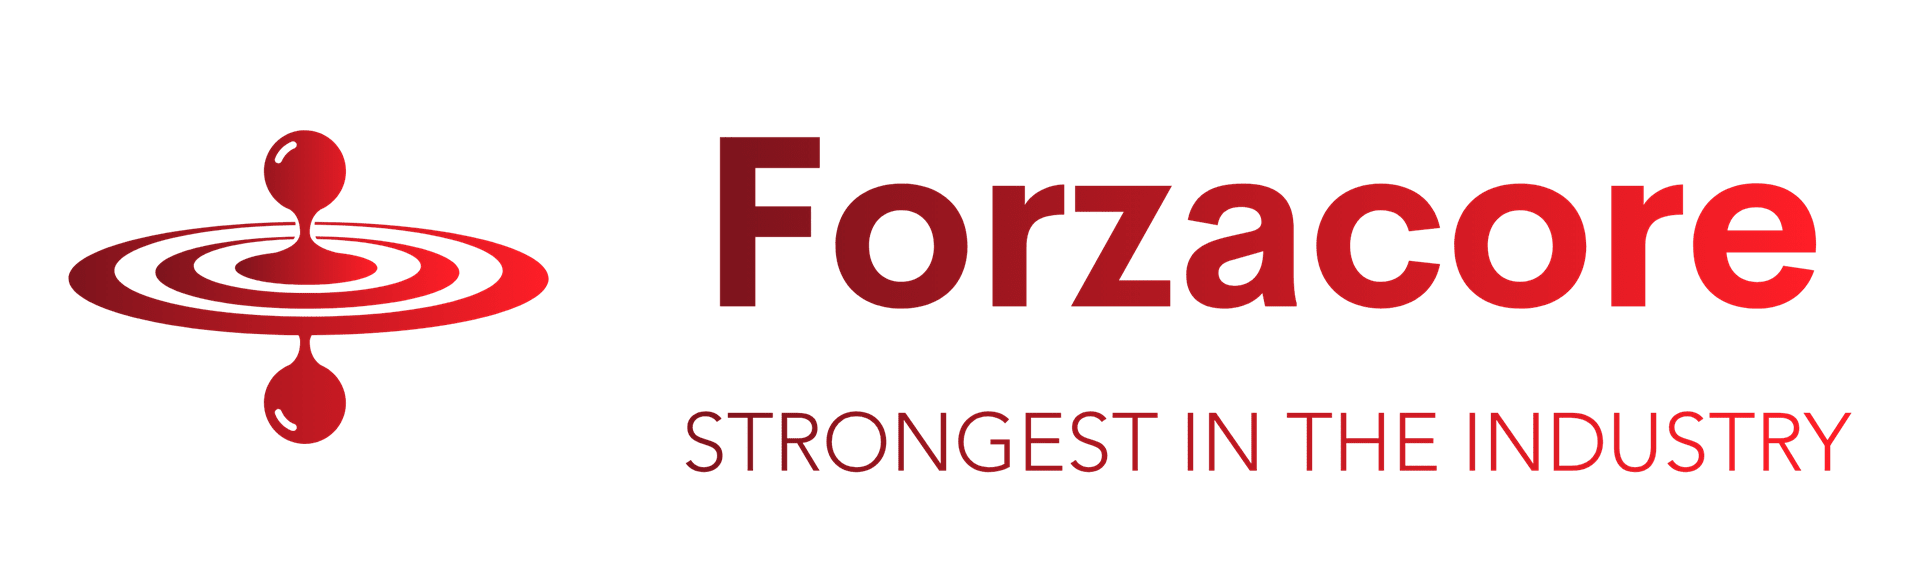 Forzacore in Lighthouse Point, FL from Rugworks